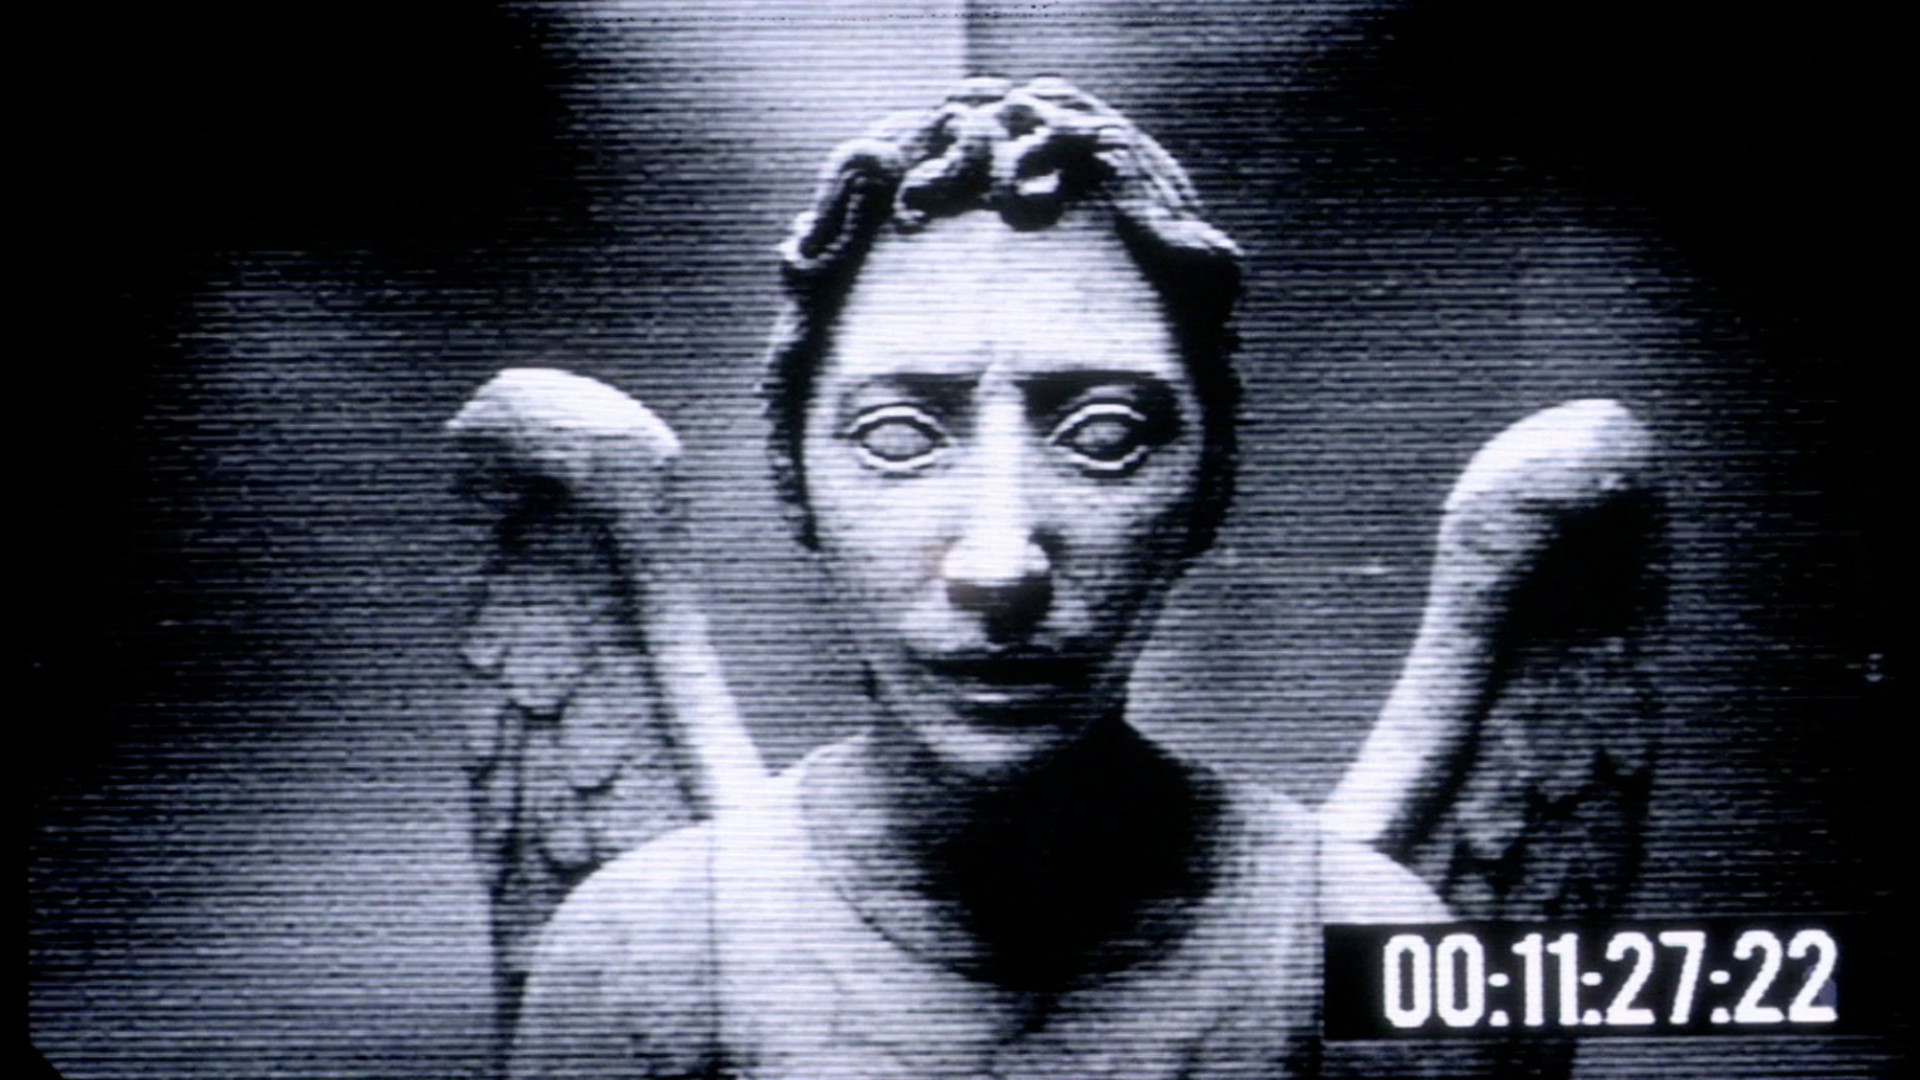 Doctor Who Weeping Angels Wallpaper 68 images 1920x1080